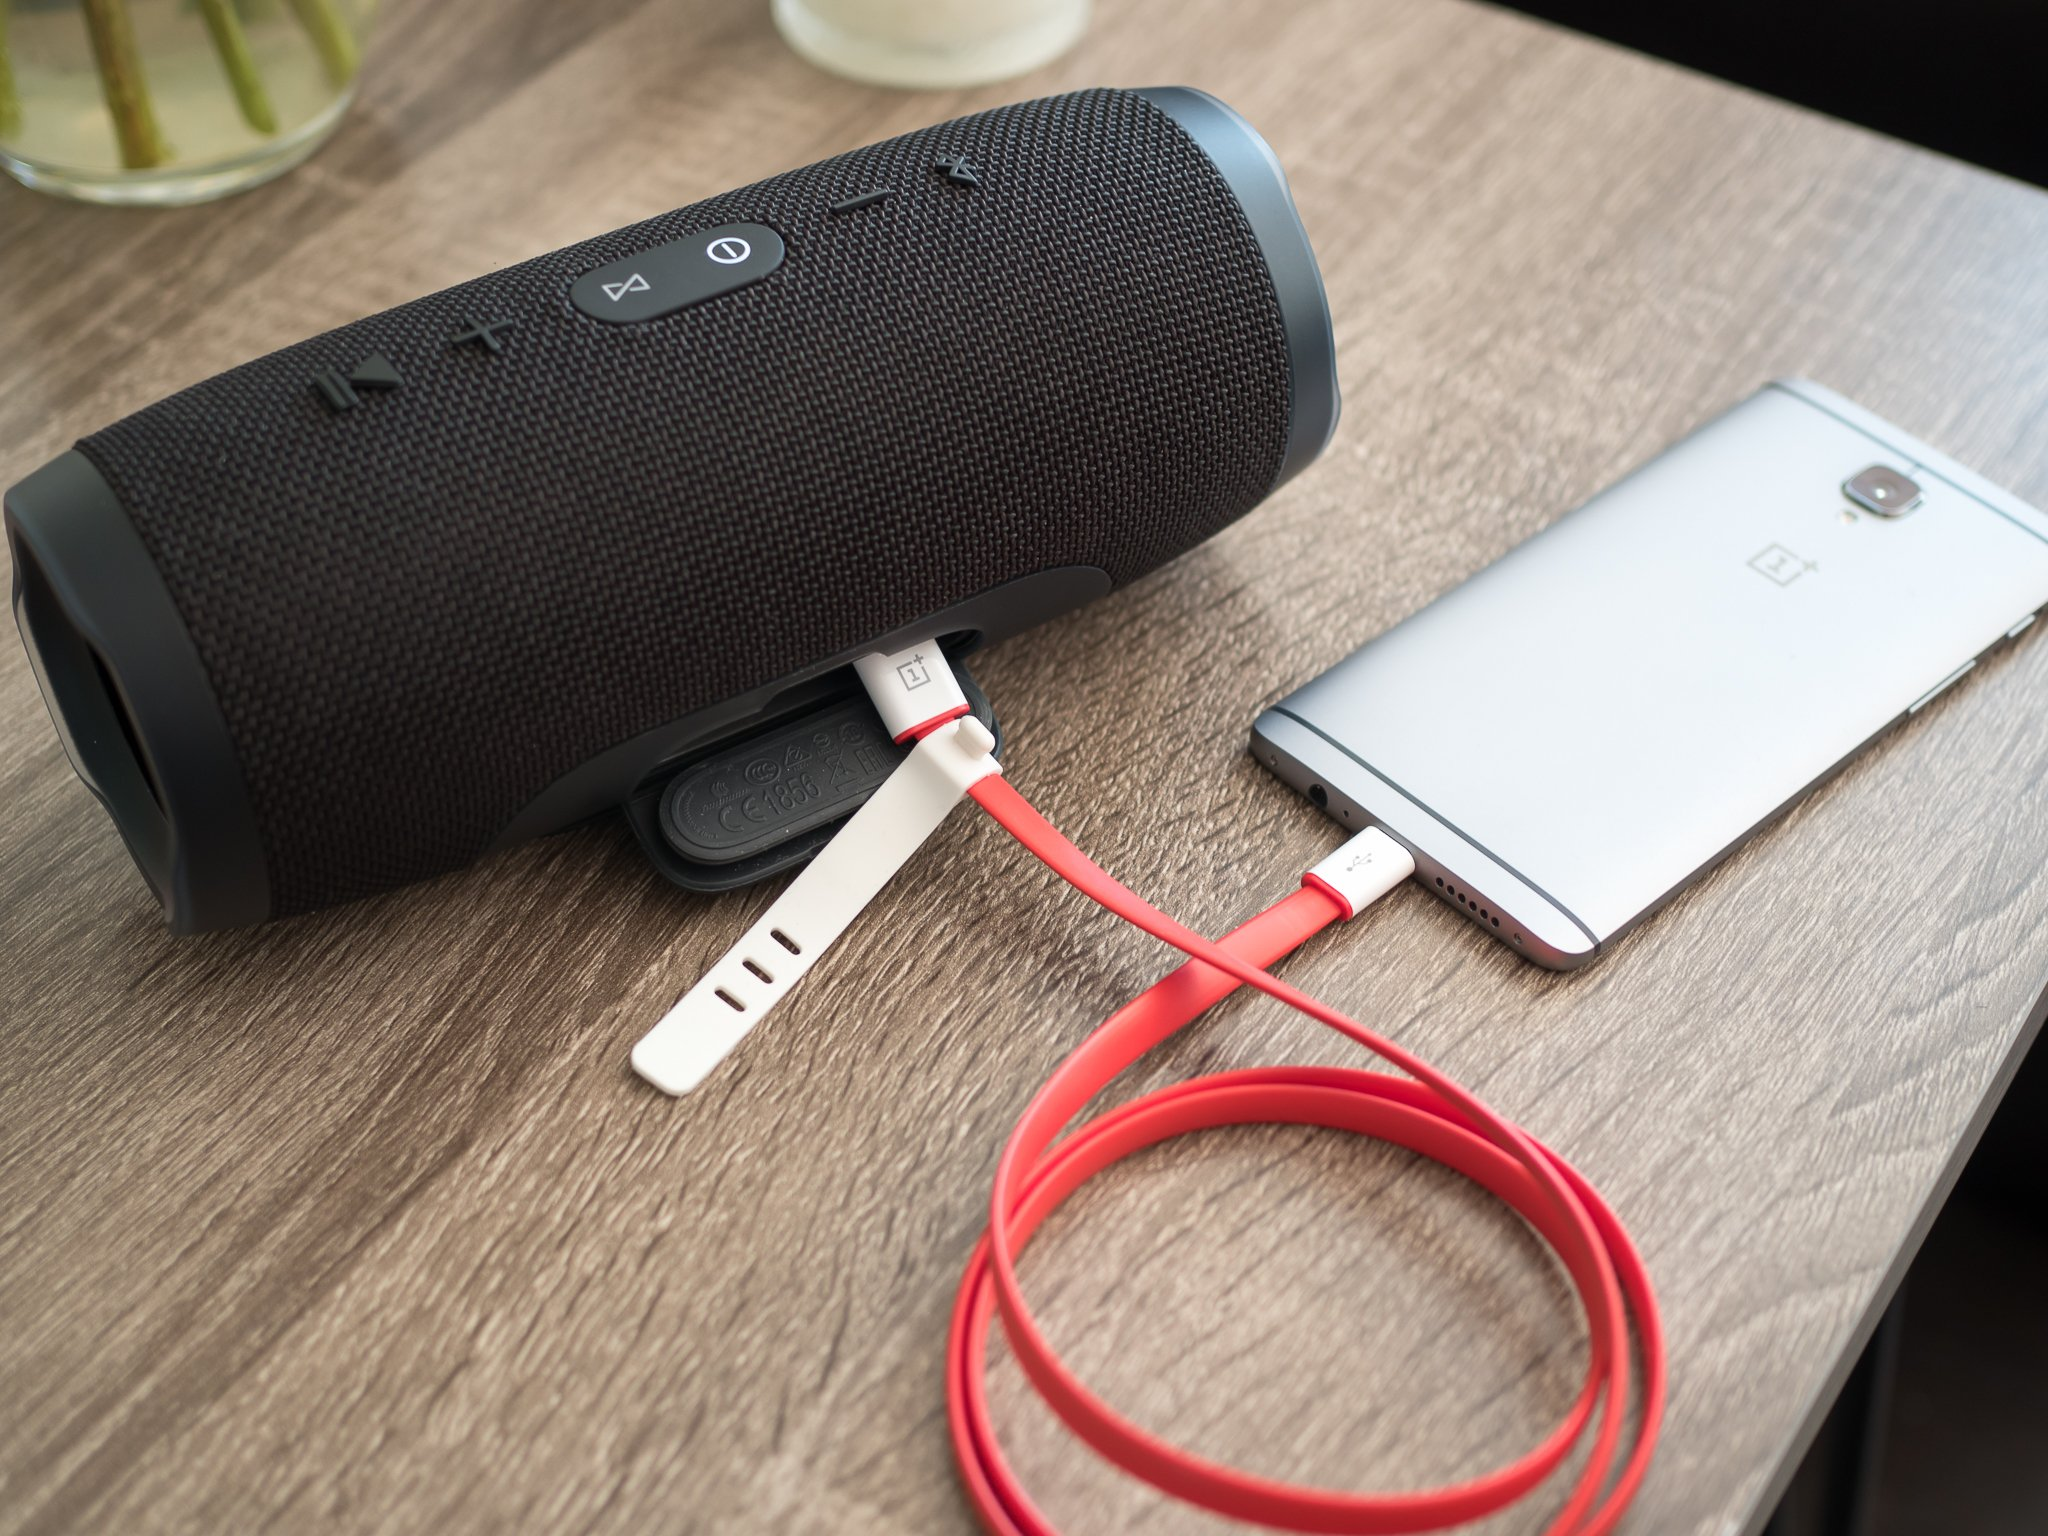 Jbl Charge3 Jbl Charge 3 And Clip 2 Prove There 39s Still Innovation In